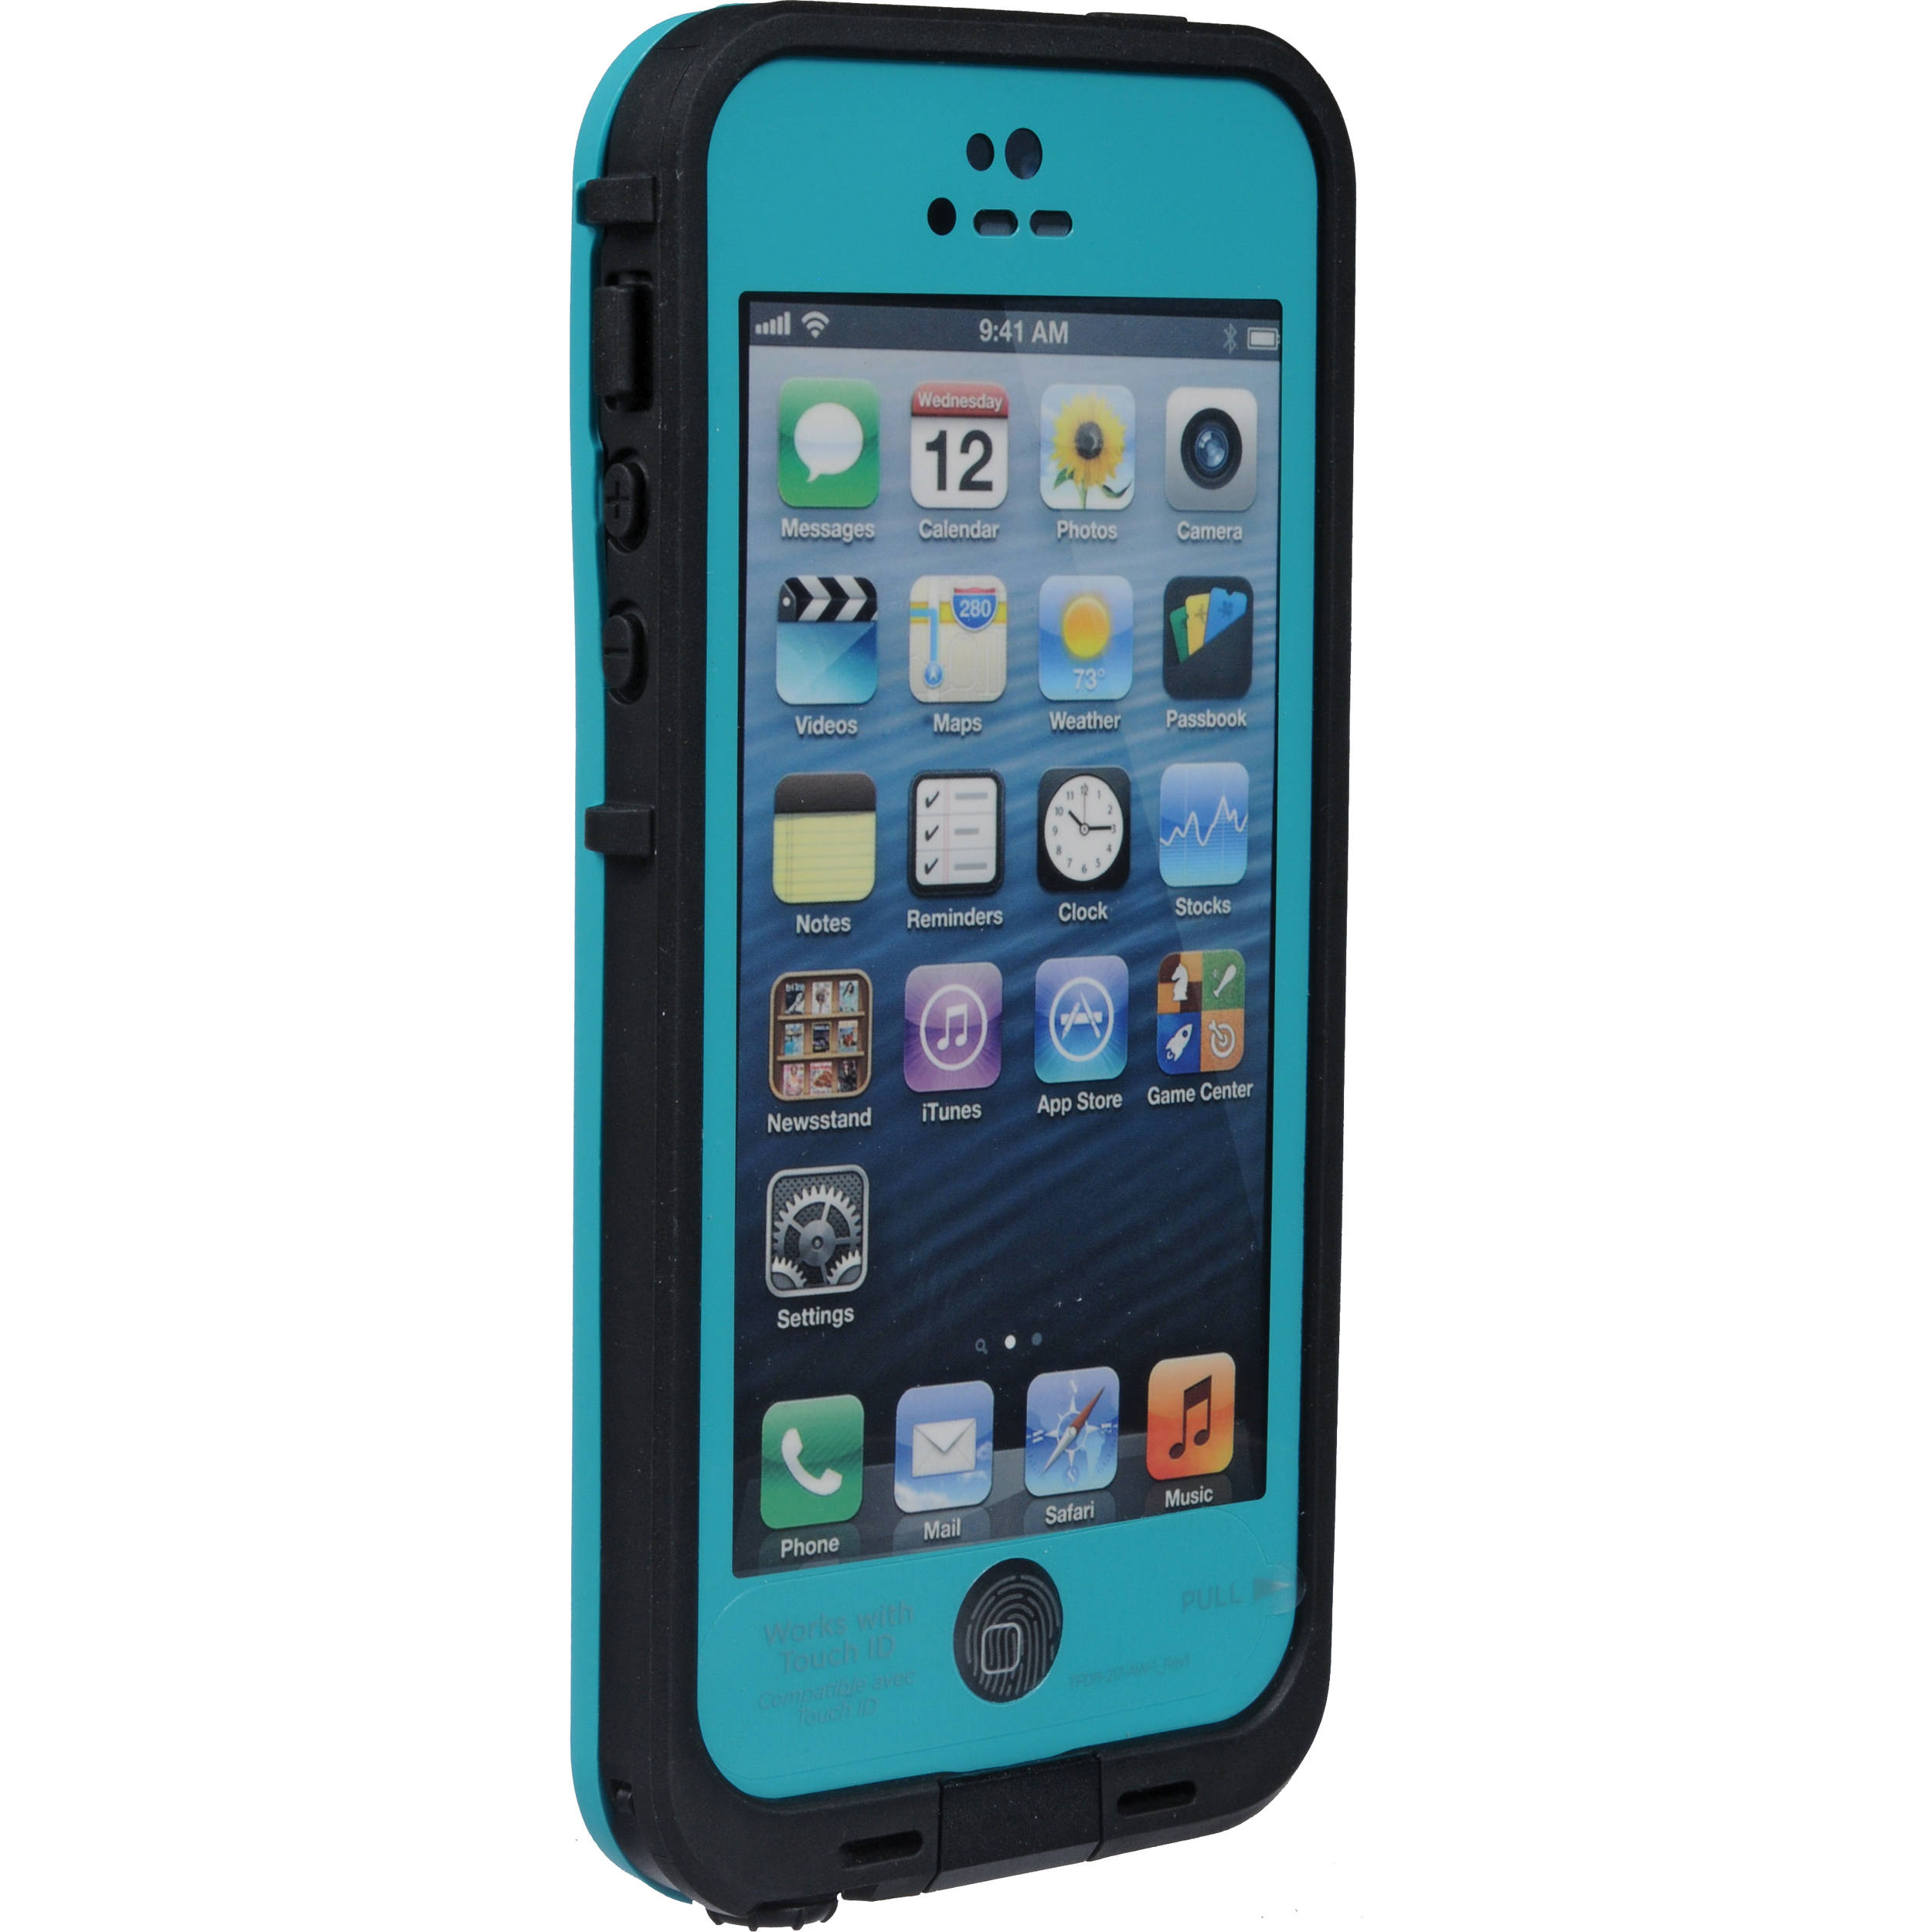 lifeproof iphone 5 case lifeproof fr for iphone 5 5s se teal black 2101 06 b amp h 1868